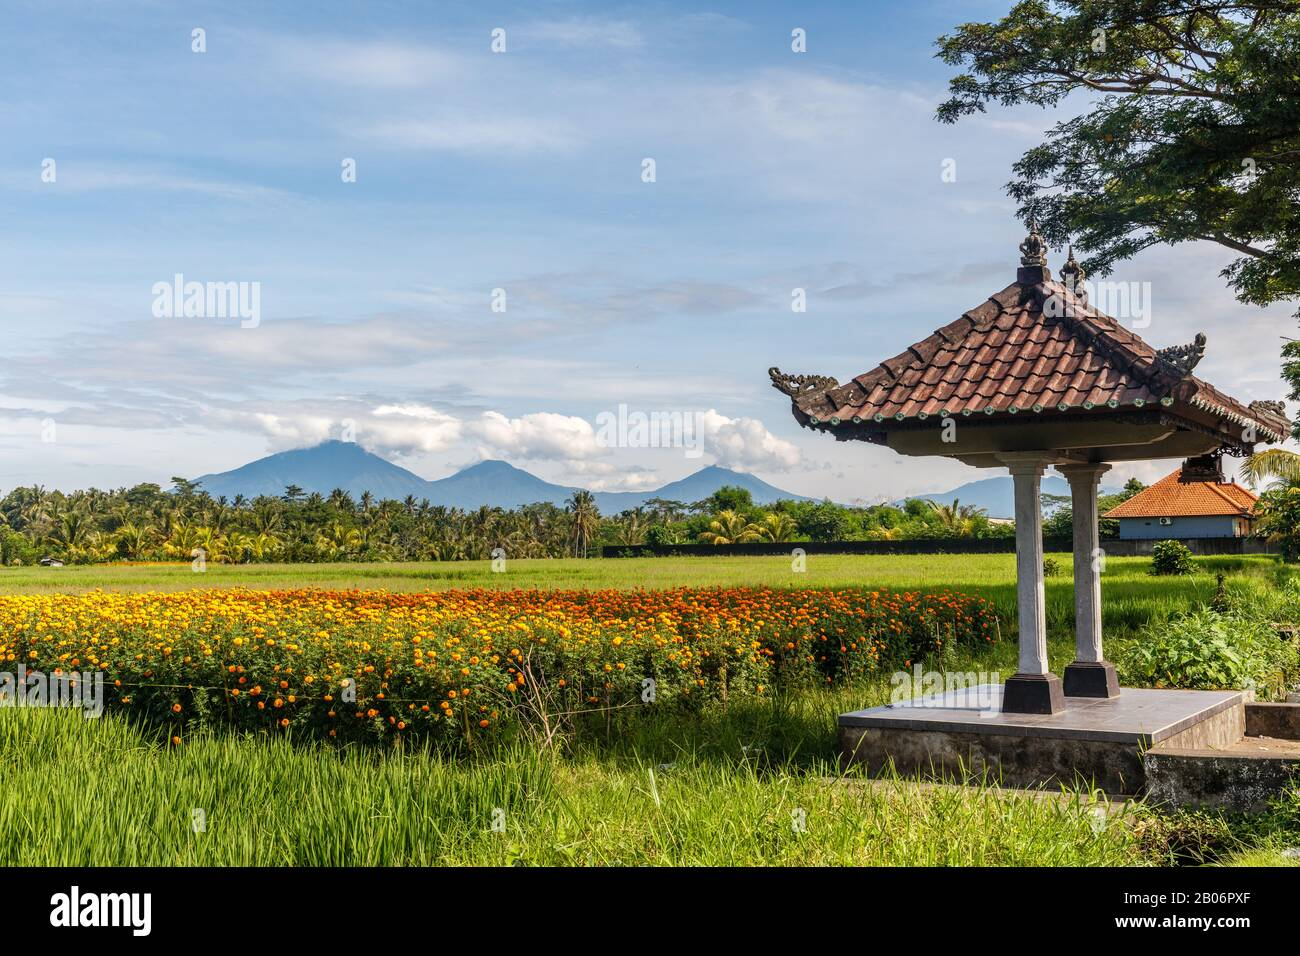 Balinese bale with a background of a field of blooming marigolds, rice field, mountains. Bedugul, Tabanan, Bali Island, Indonesia. Stock Photo